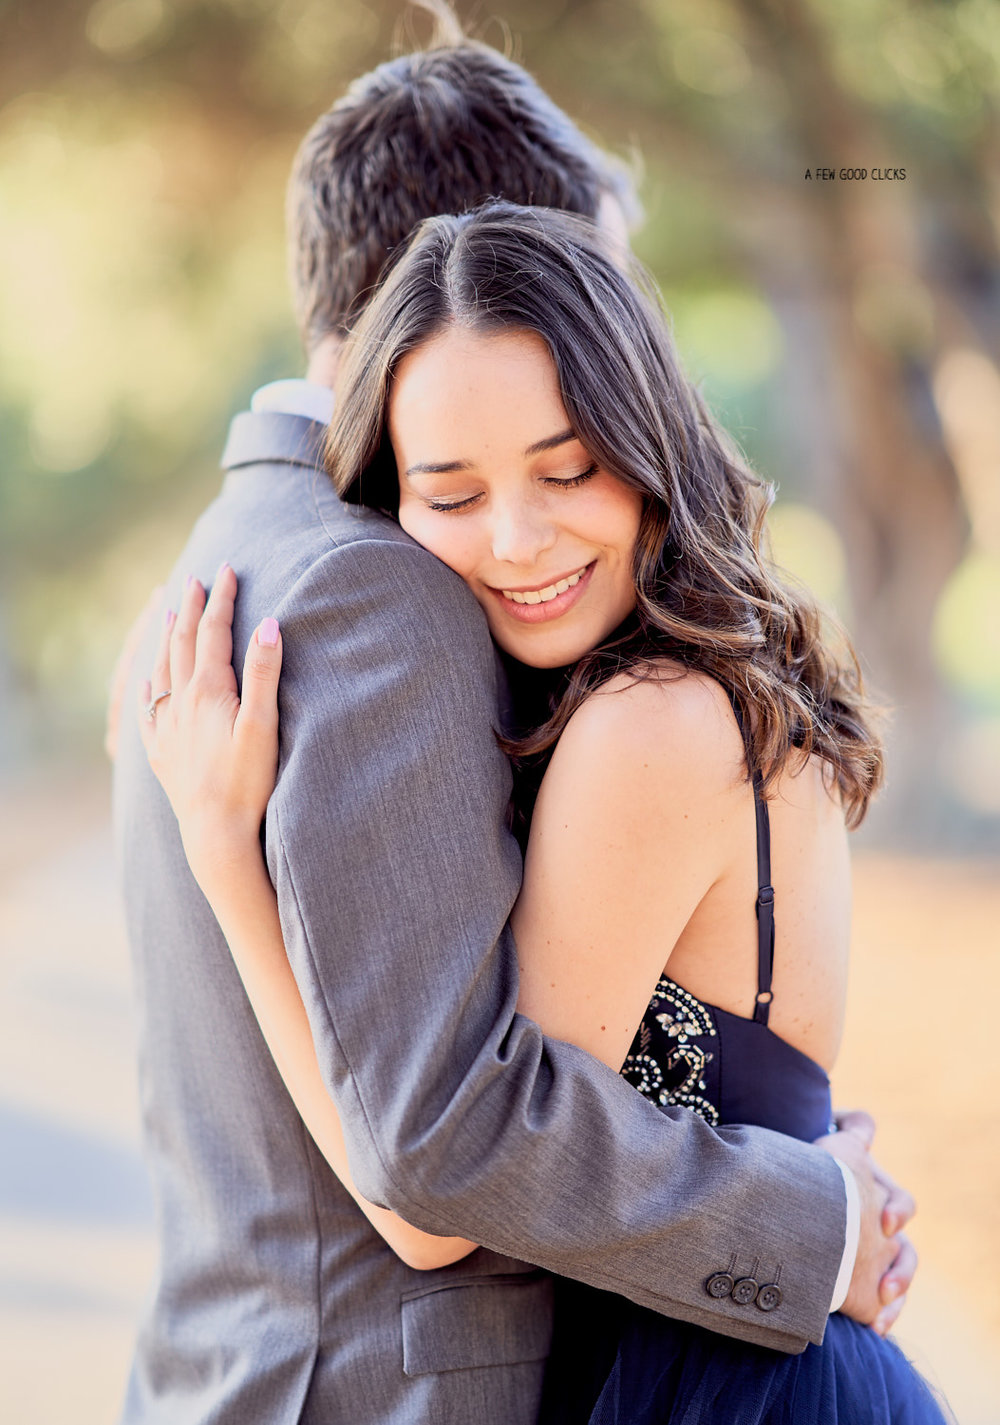 cute-poses-for-couples-photo-shoot-bay-area-photography-by-afewgoodclicks